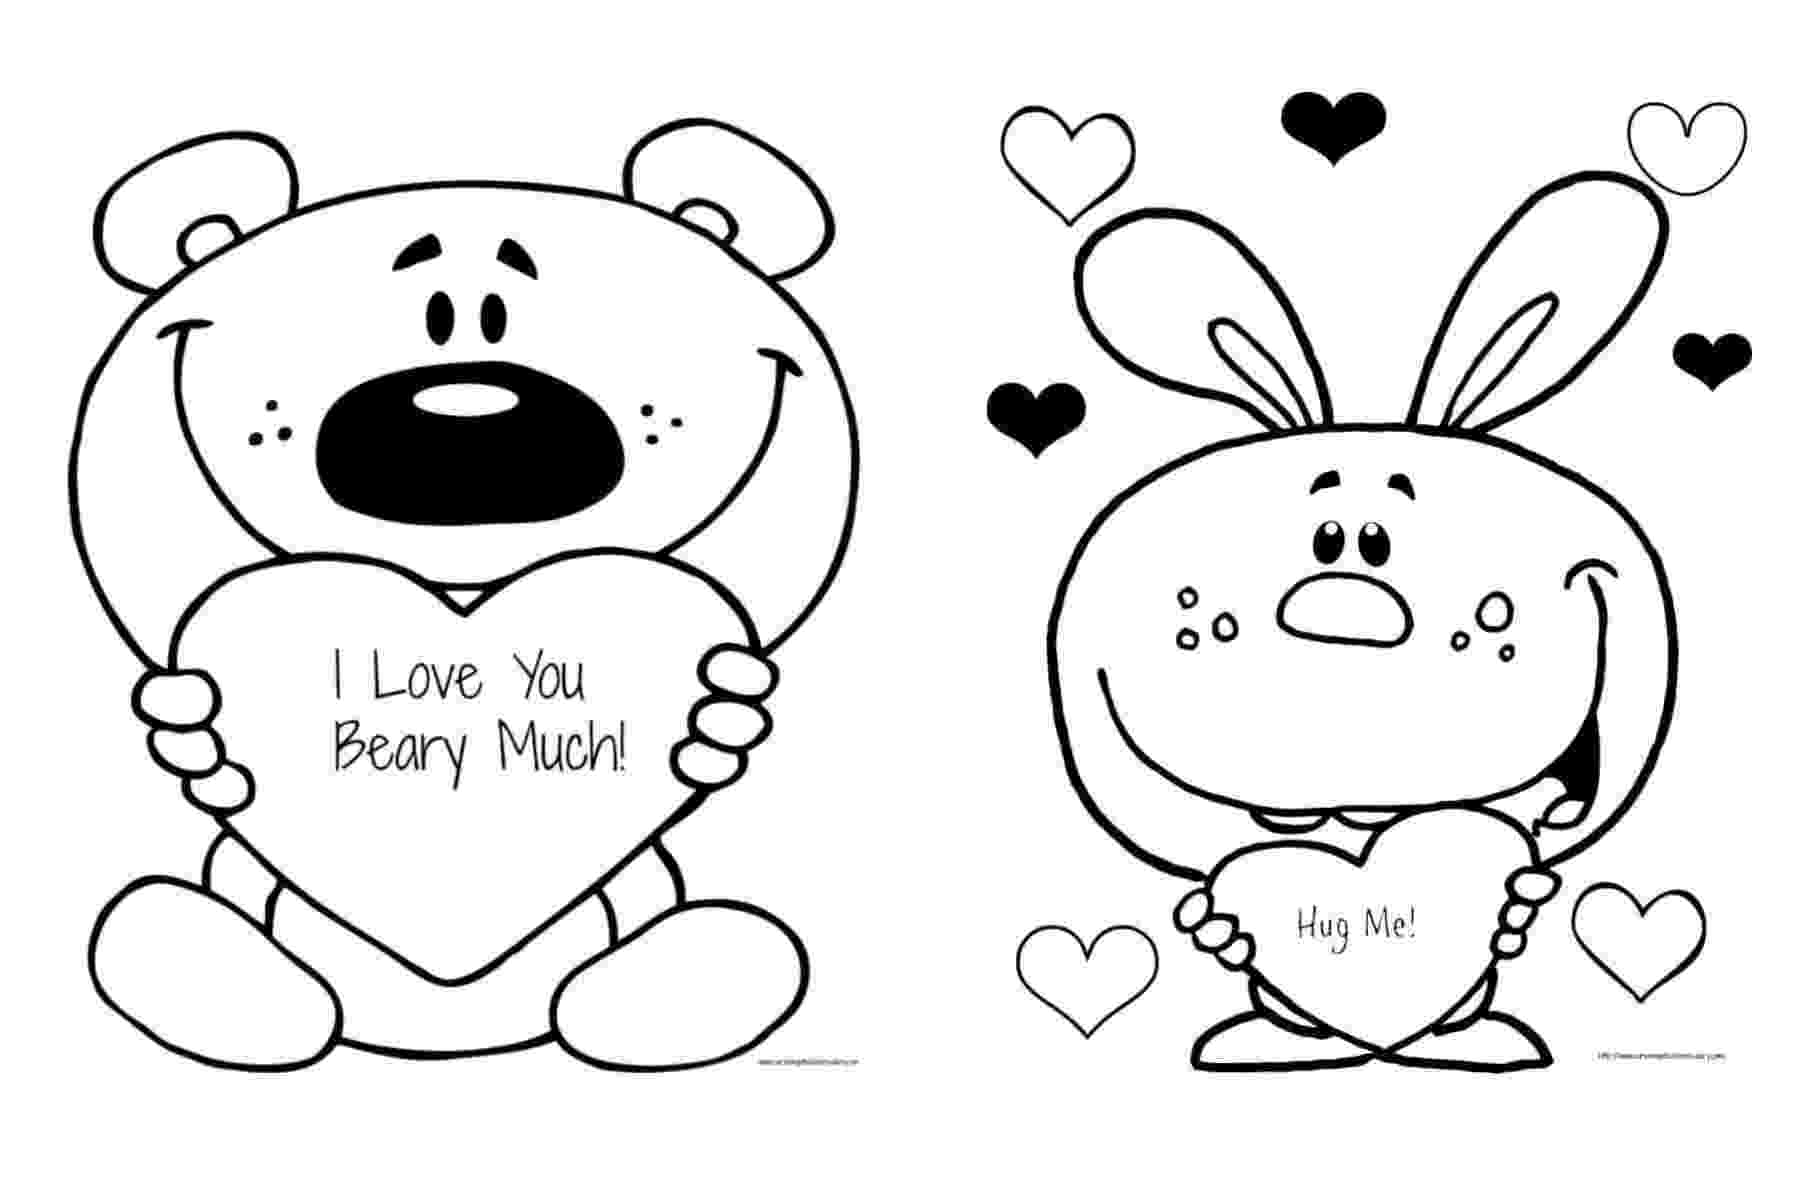 coloring pages that say i love you free valentine39s quoti love you beary muchquot coloring page say love that pages coloring you i